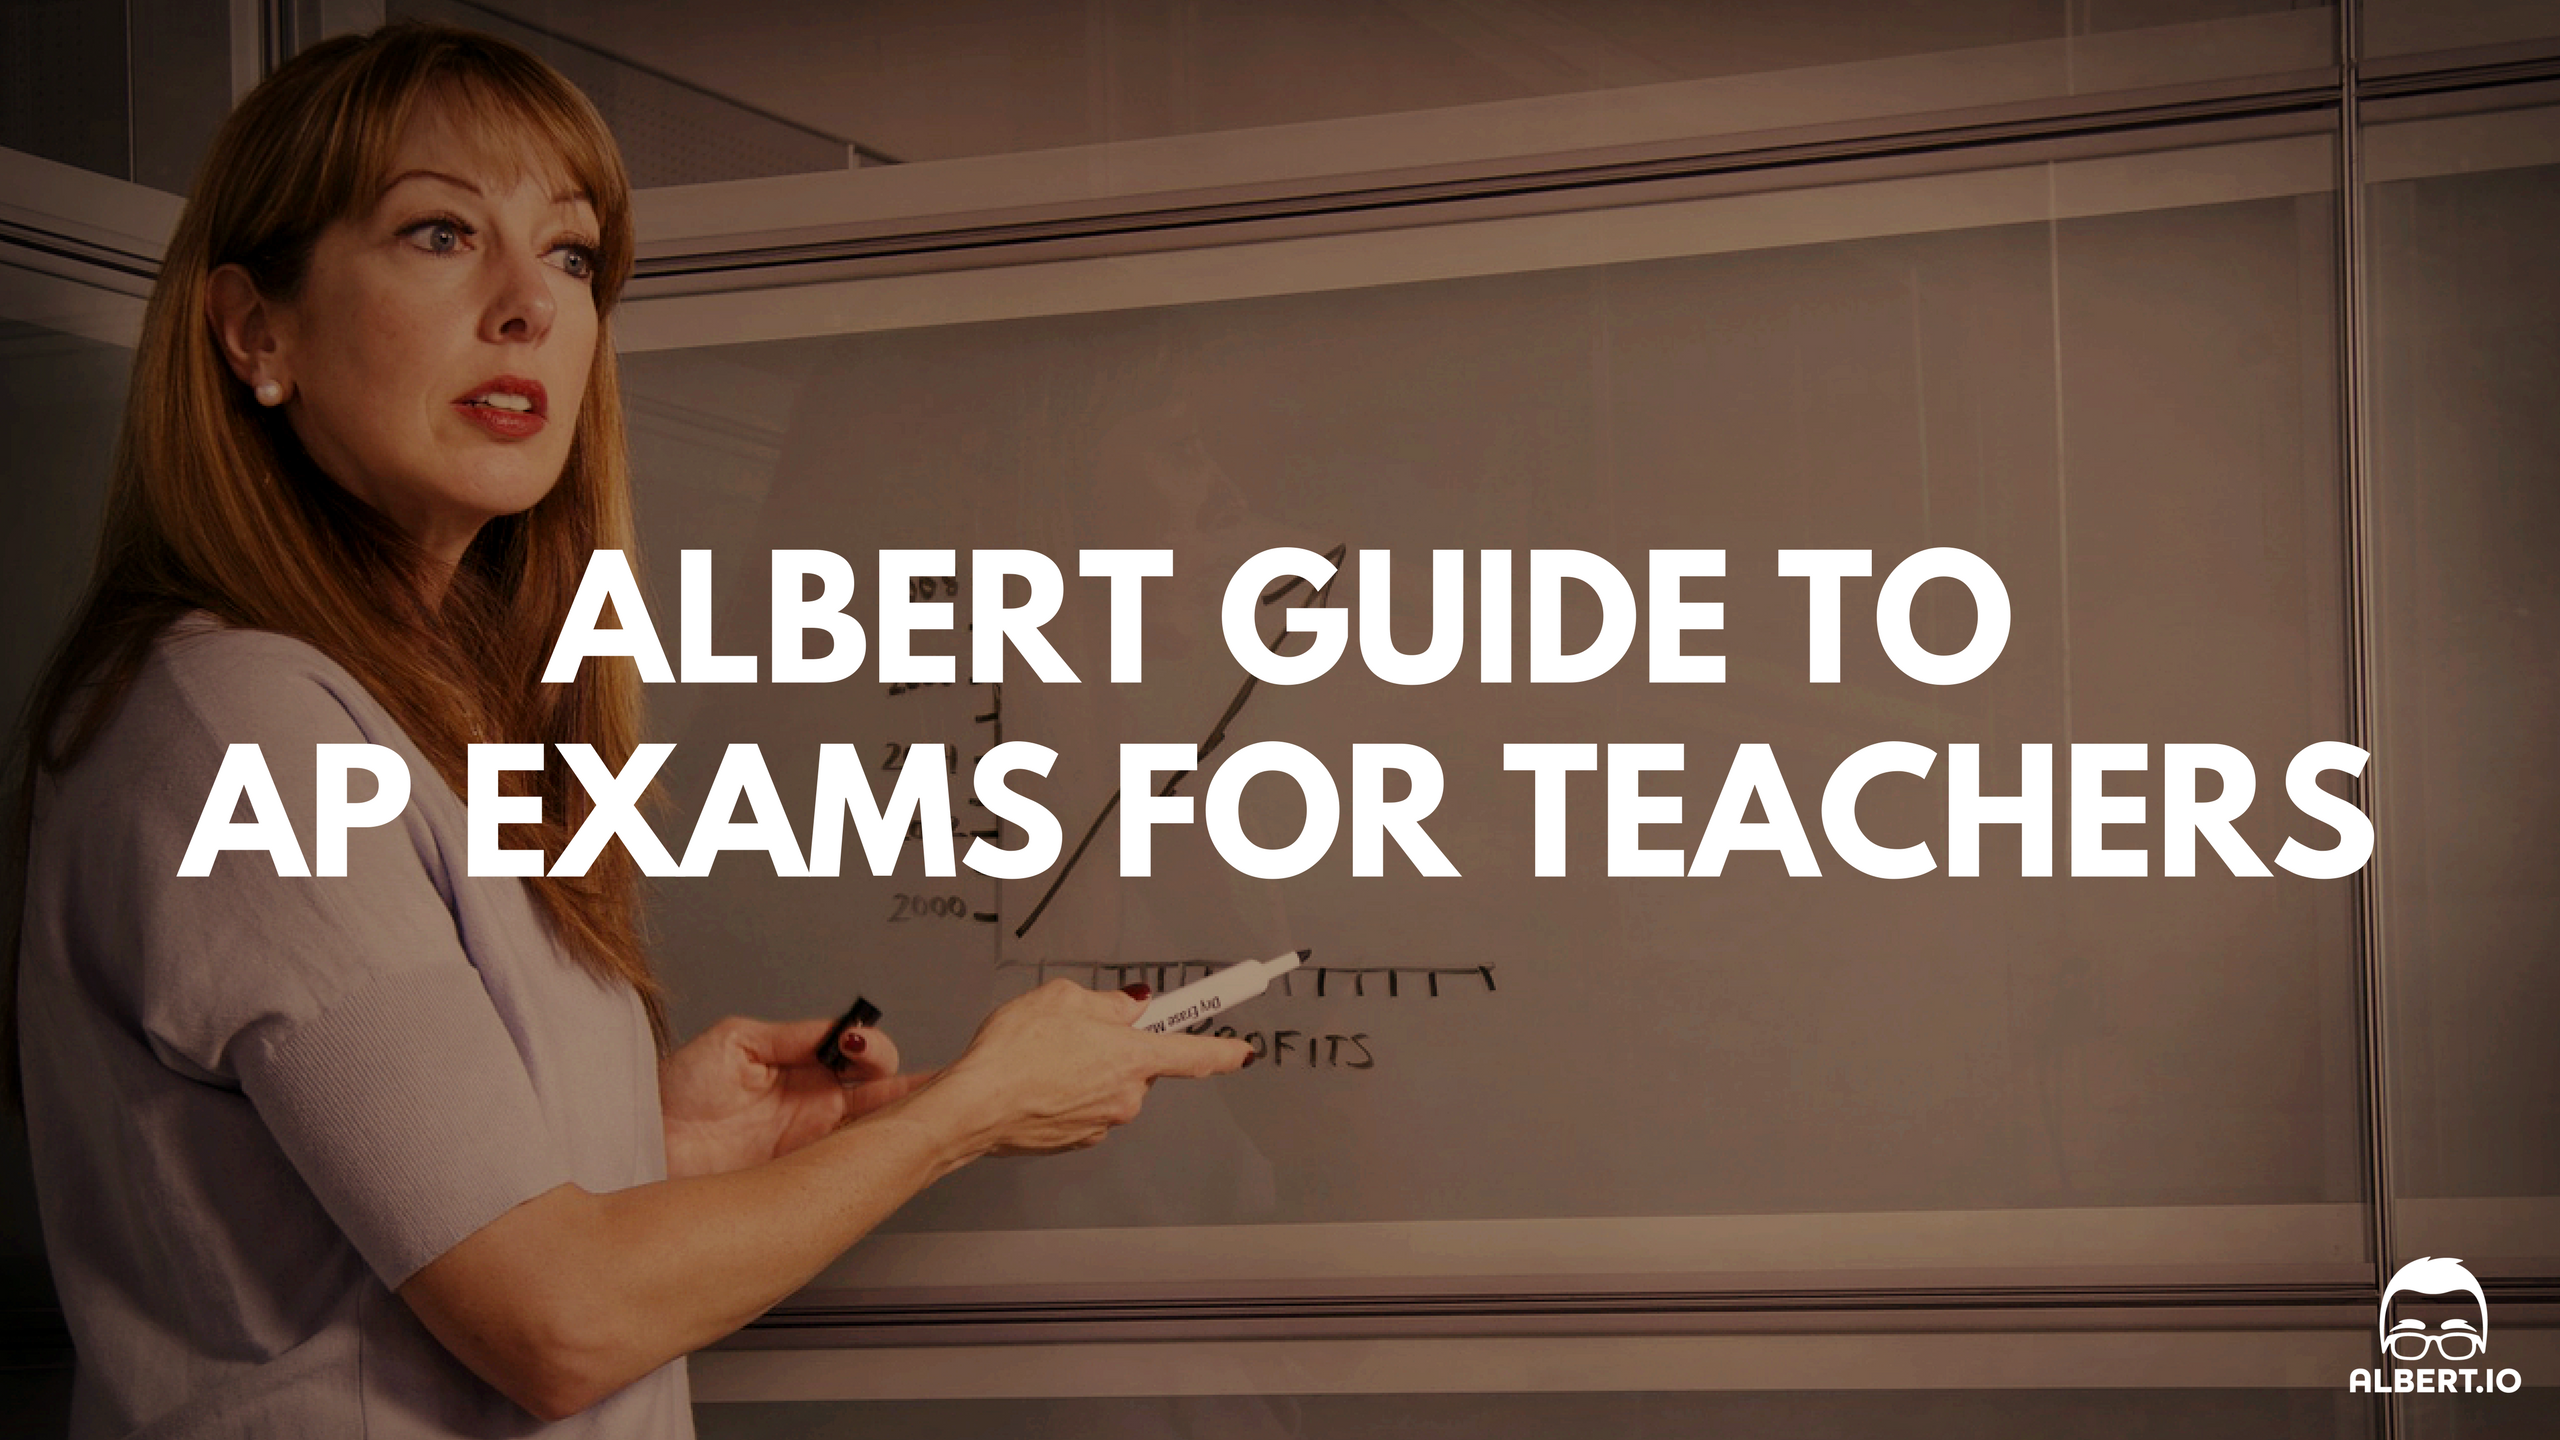 Guide to AP Exams for Teachers